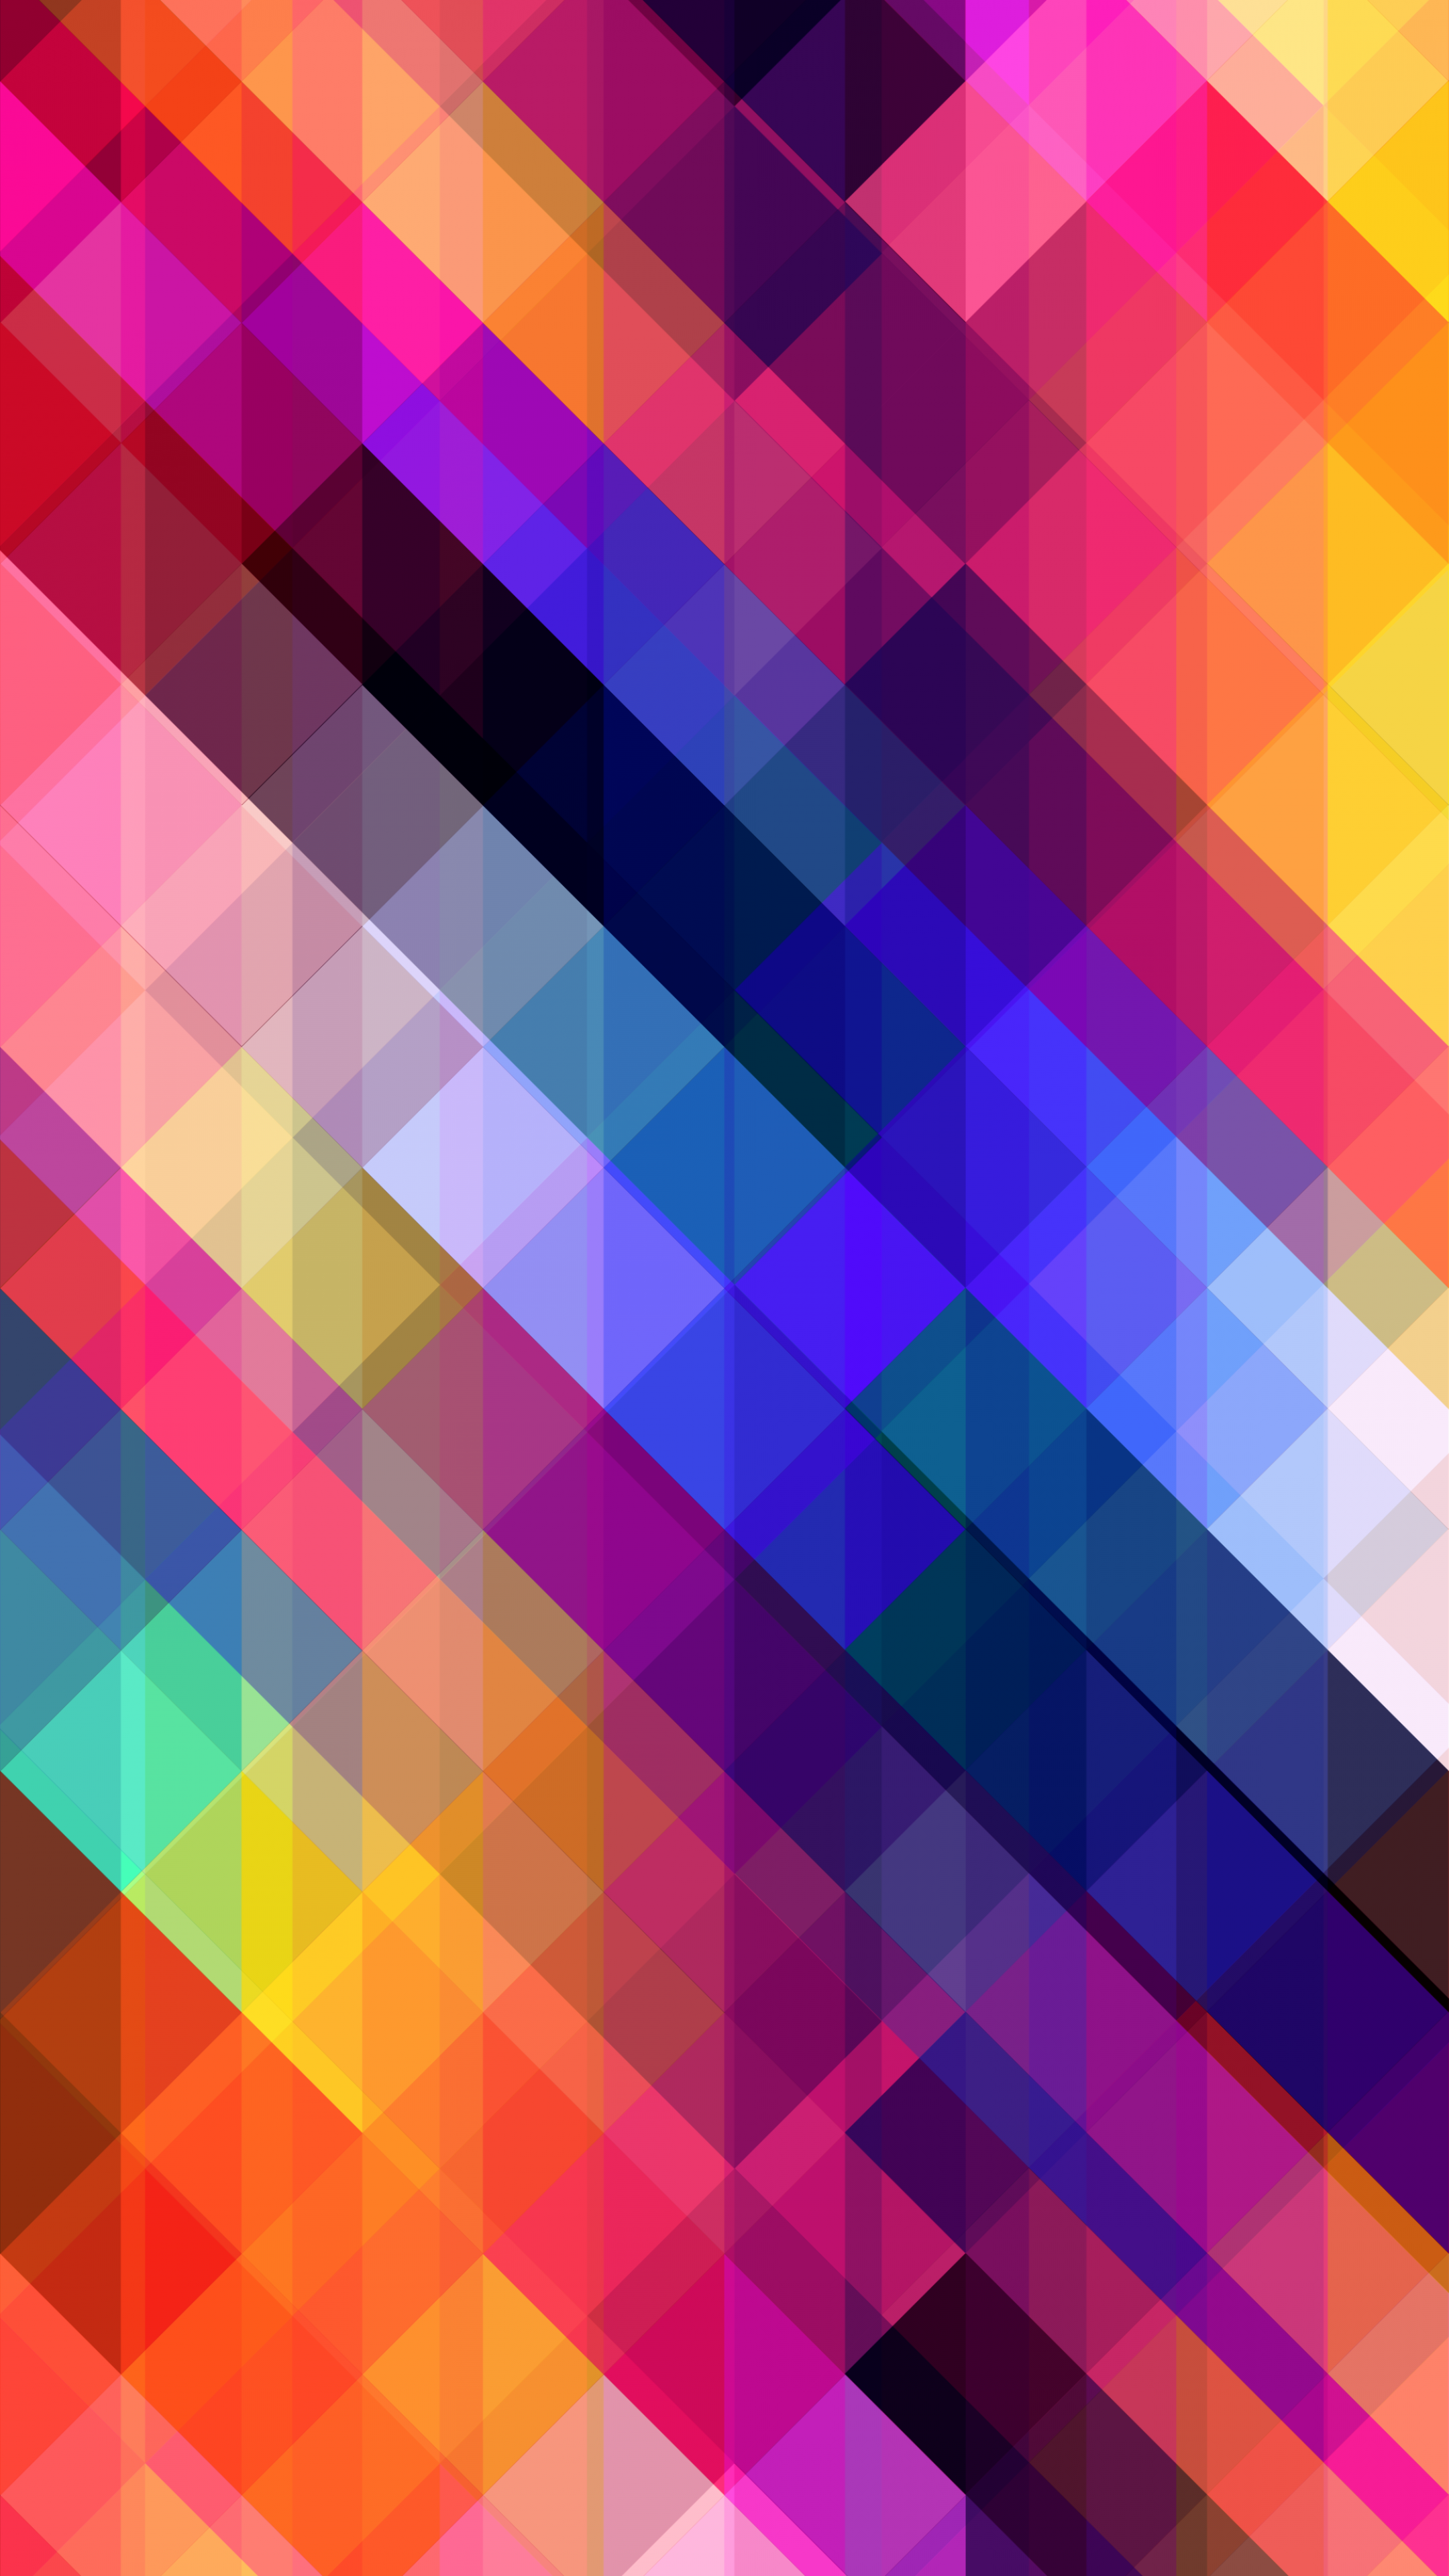 Stripes Crossed Multicolored Abstract 2160x3840 Wallpaper Colorful Wallpaper Android Wallpaper Cellphone Wallpaper